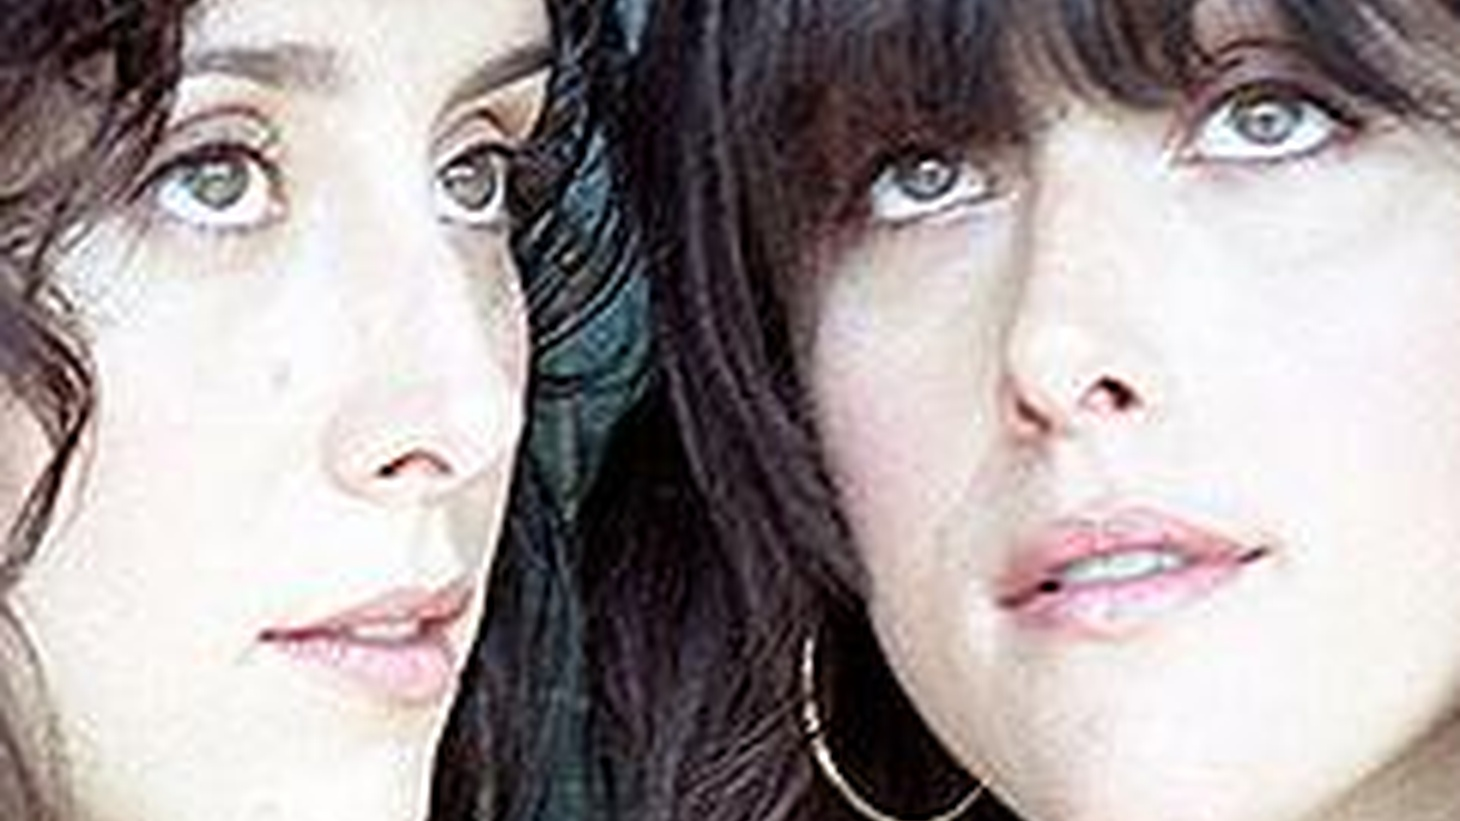 Los Angeles based sisters Chandra and Leigh, known around town as The Watson Twins, musically diverse—hints of new folk, country and Americana are peppered throughout their music.